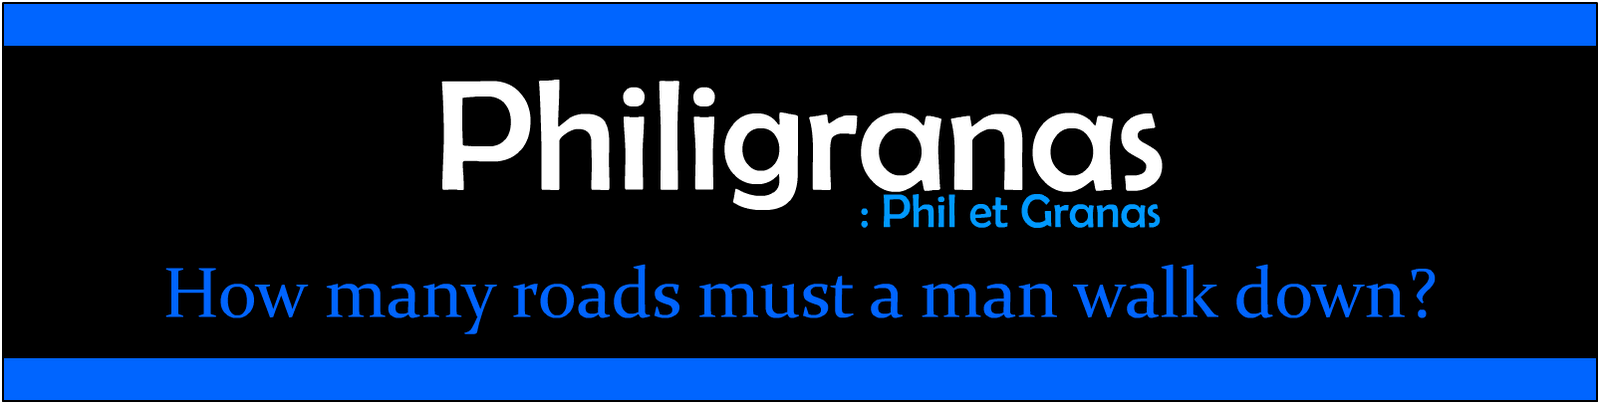 Philigranas